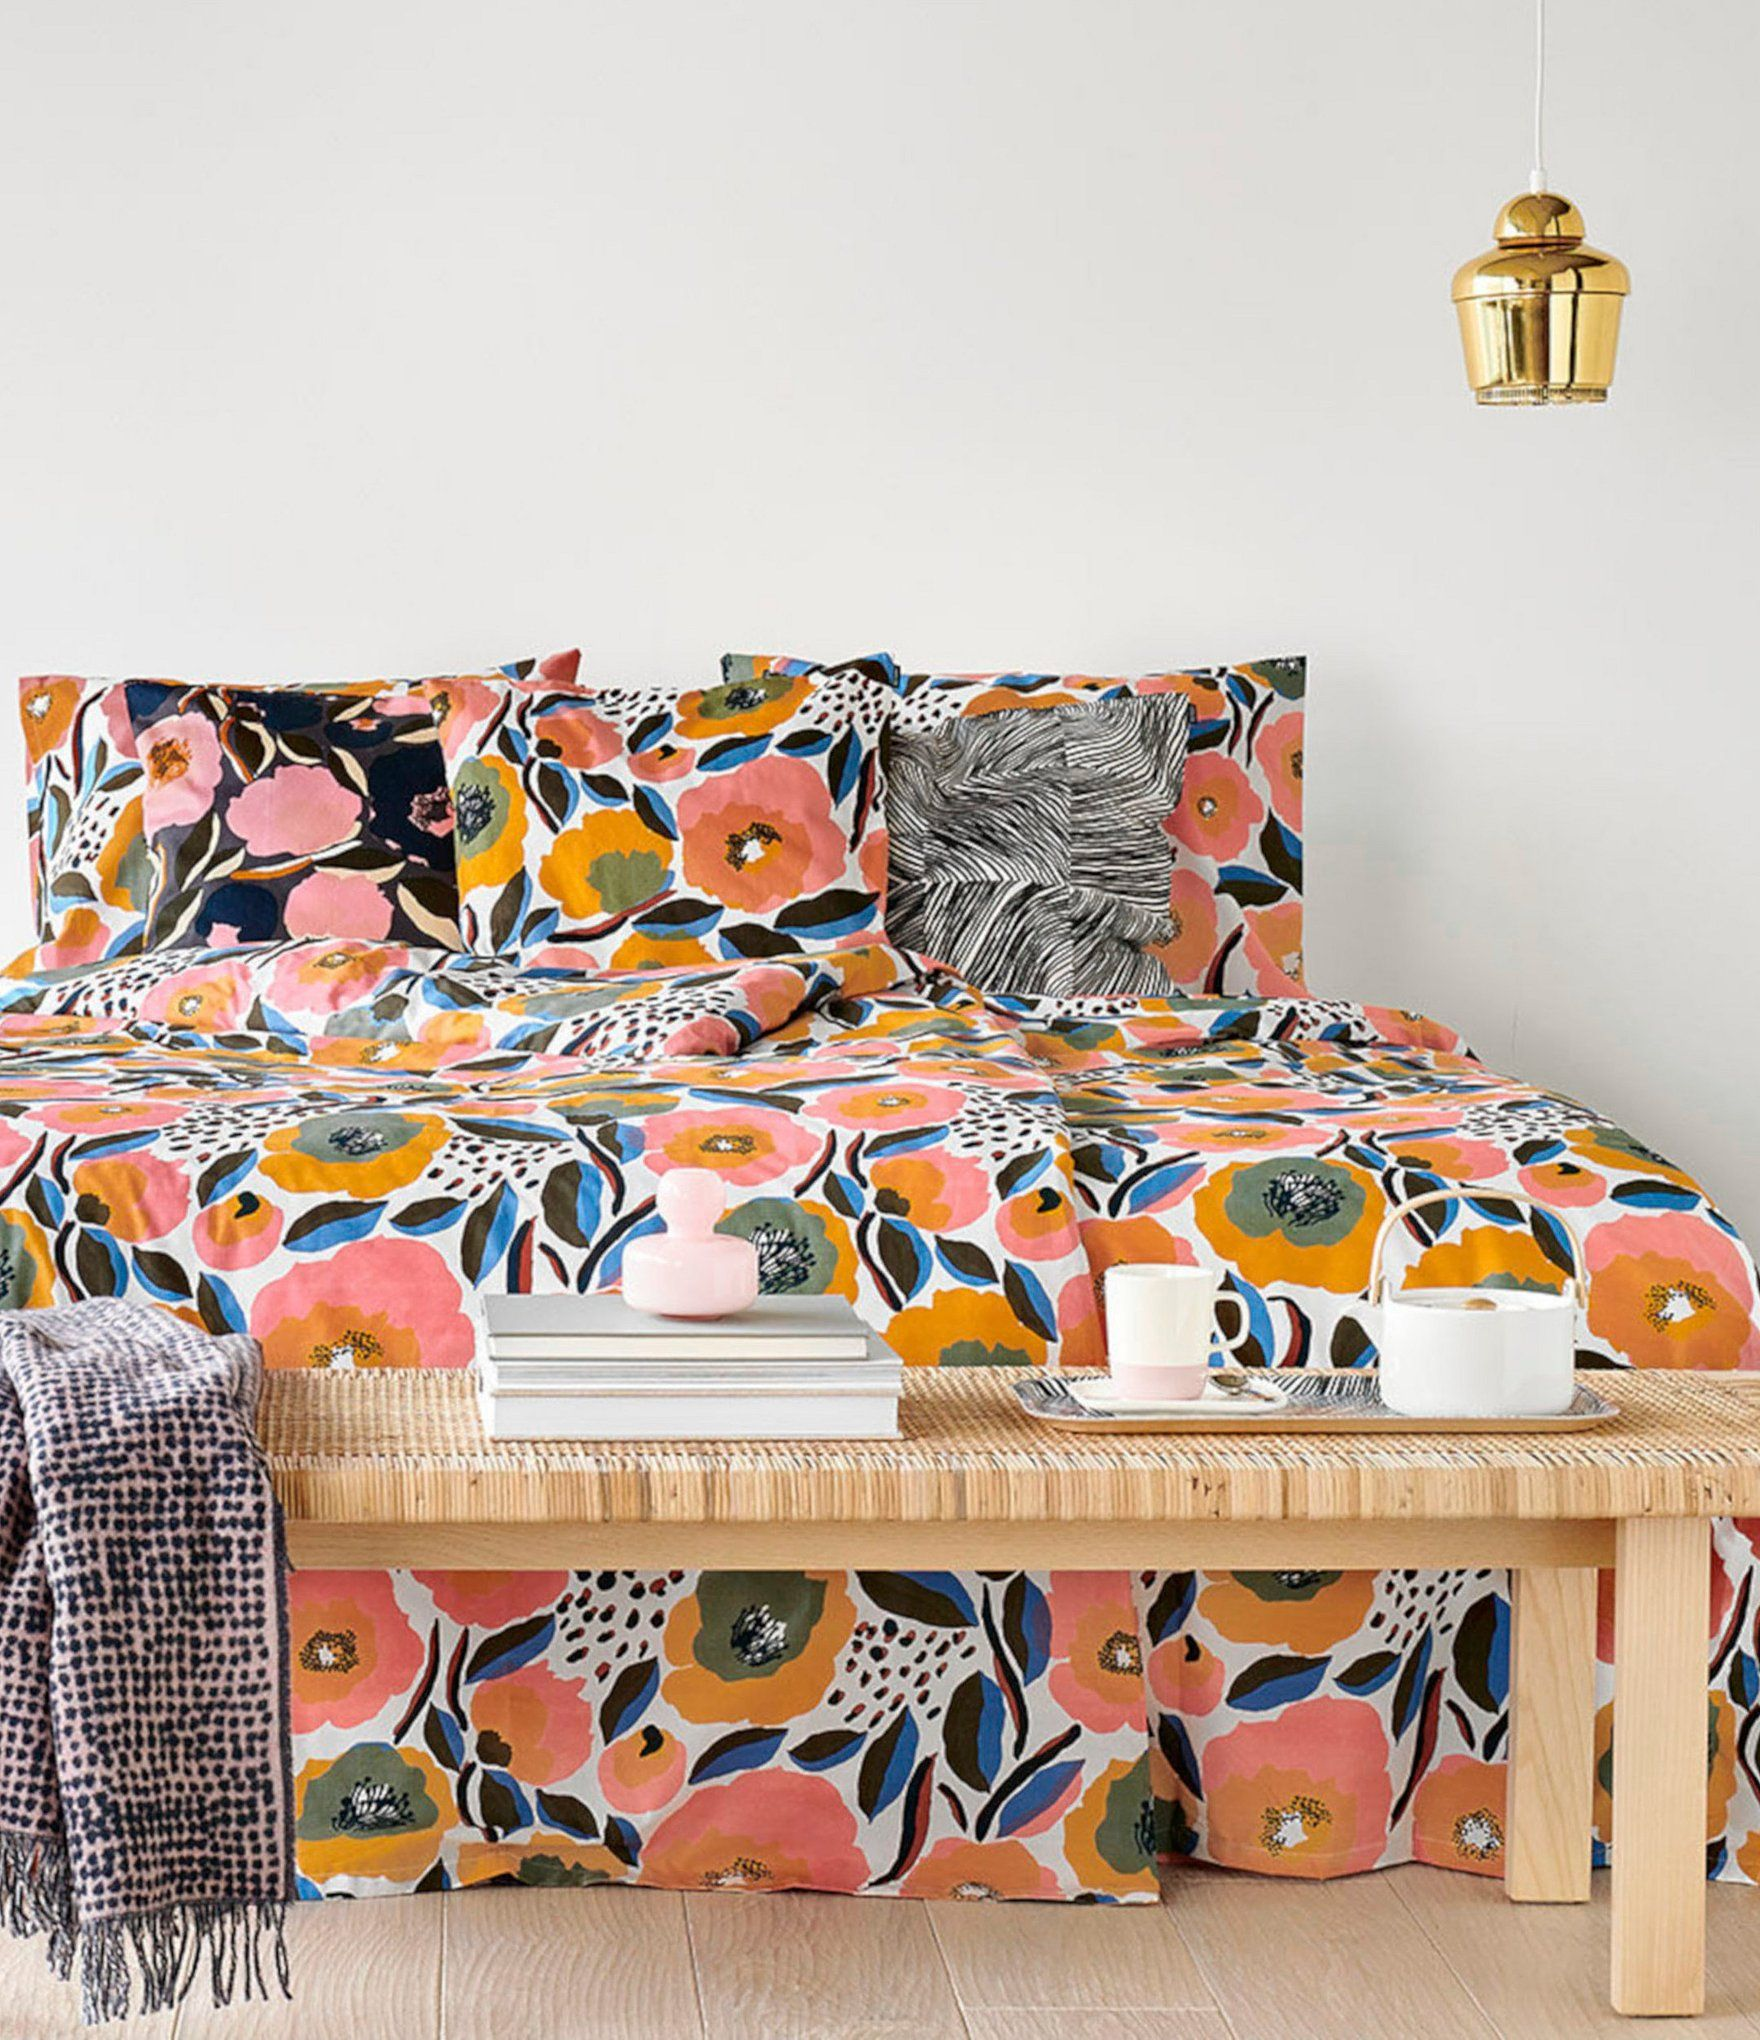 Marimekko Rosarium Floral Mini Comforter Set - Open/Medium Pink King